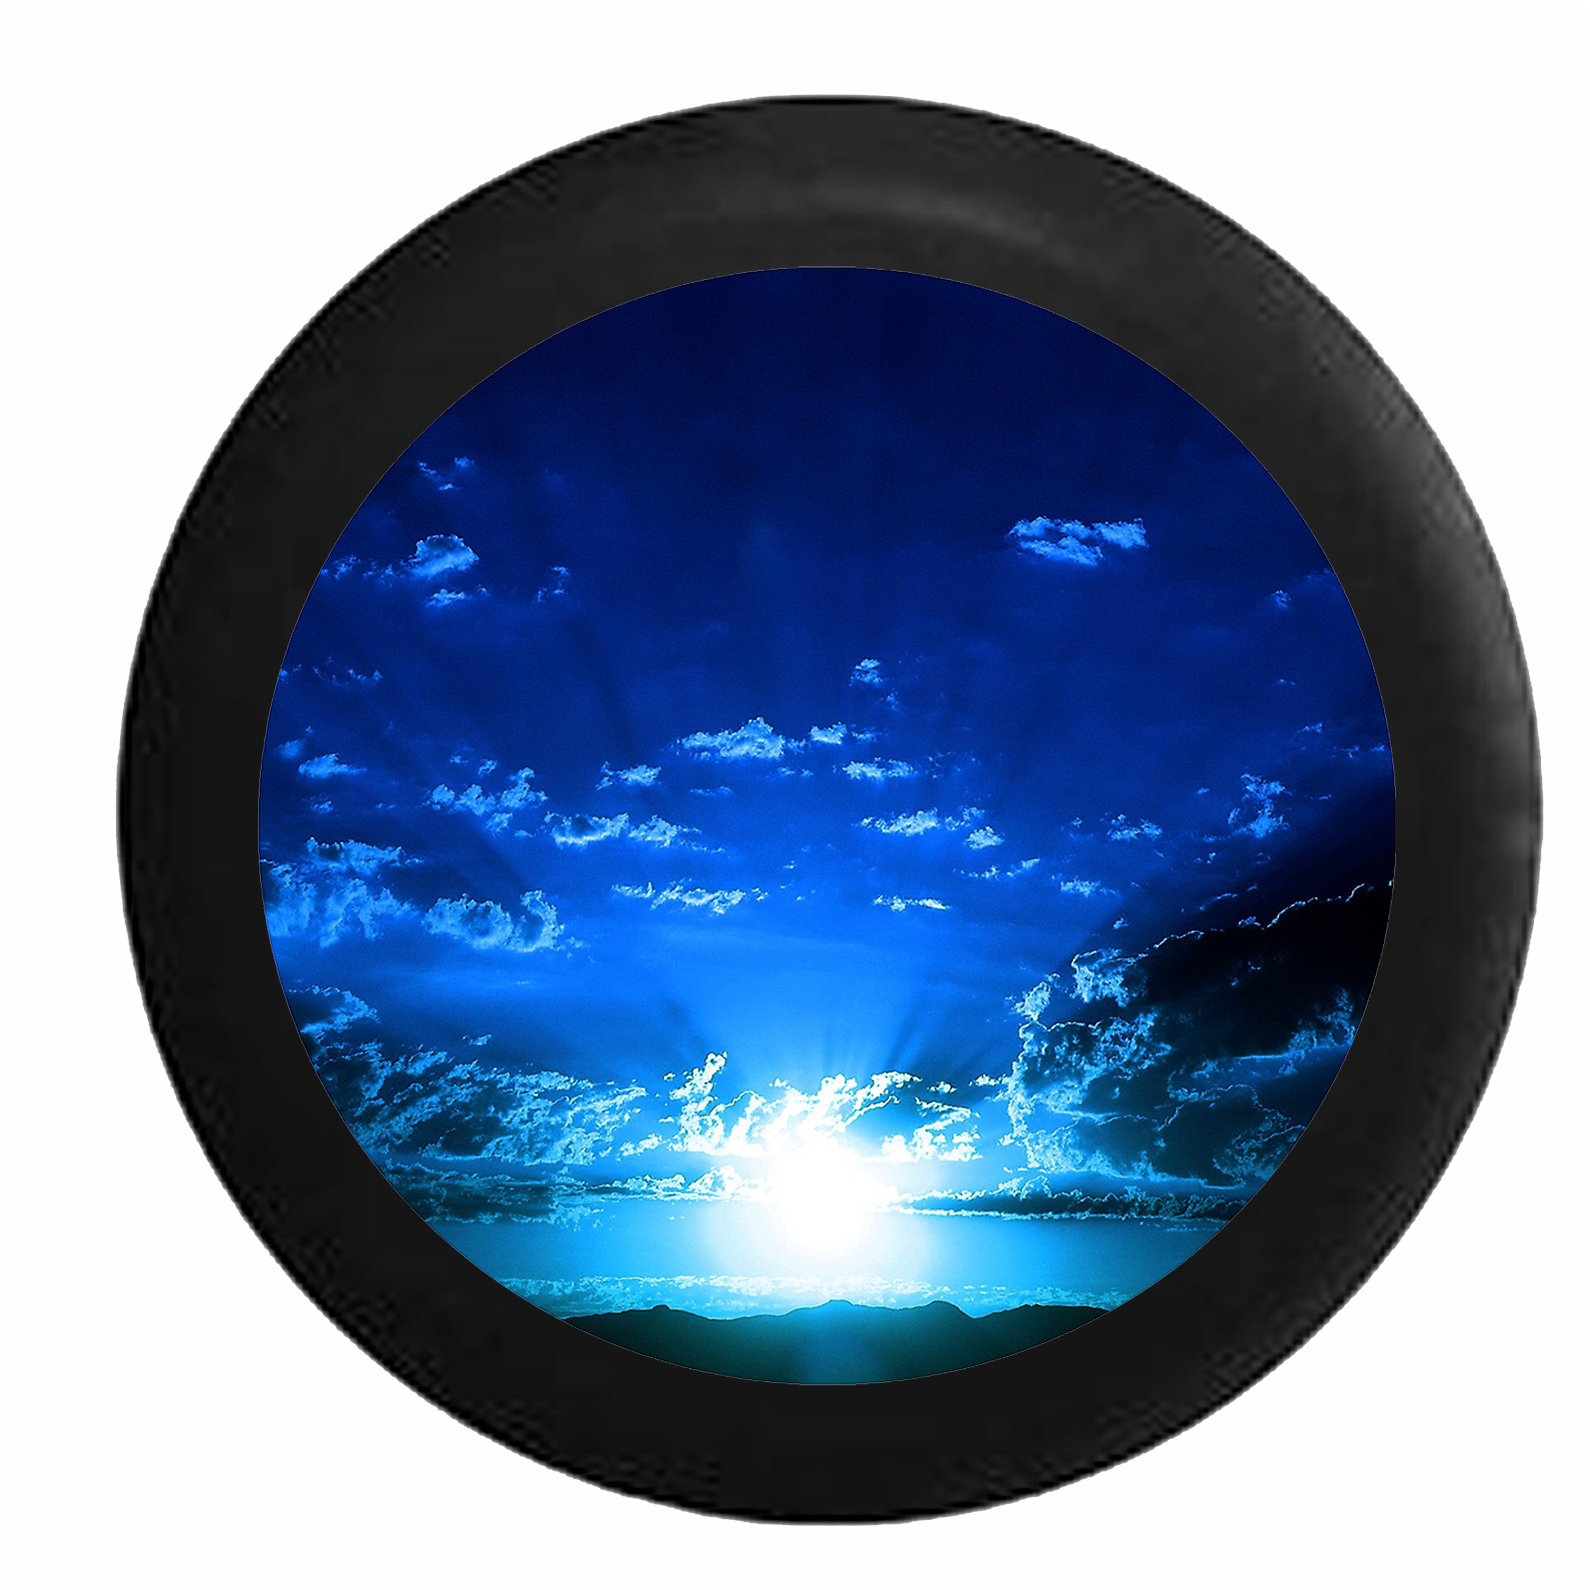 Blue Sky and Clouds Sunrise Sunset Beaming Light Jeep RV Camper Spare Tire Cover Black 27.5 in